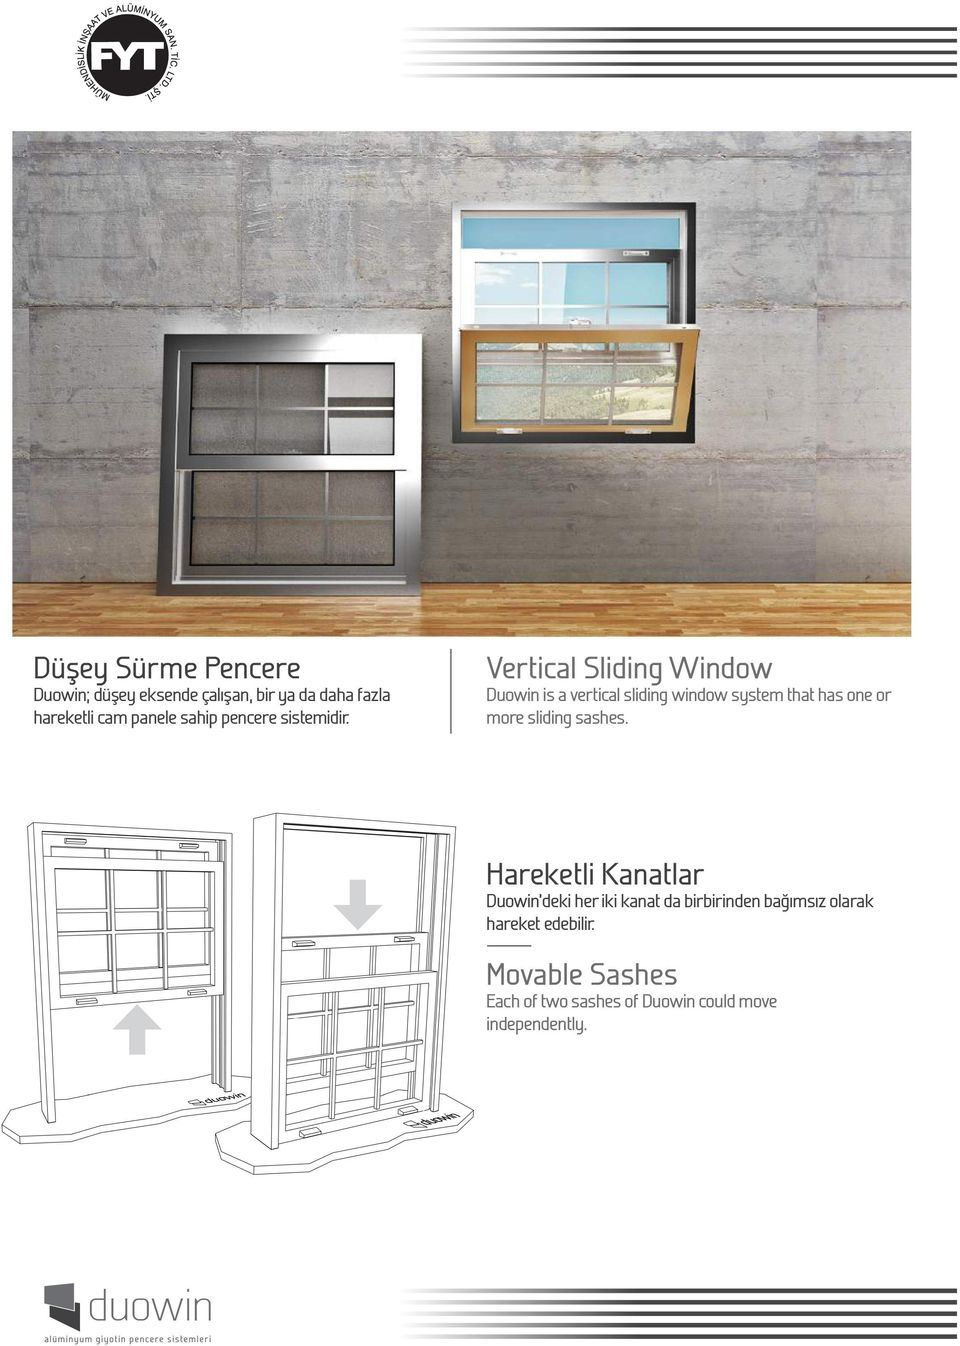 Vertical Sliding Window Duowin is a vertical sliding window system that has one or more sliding